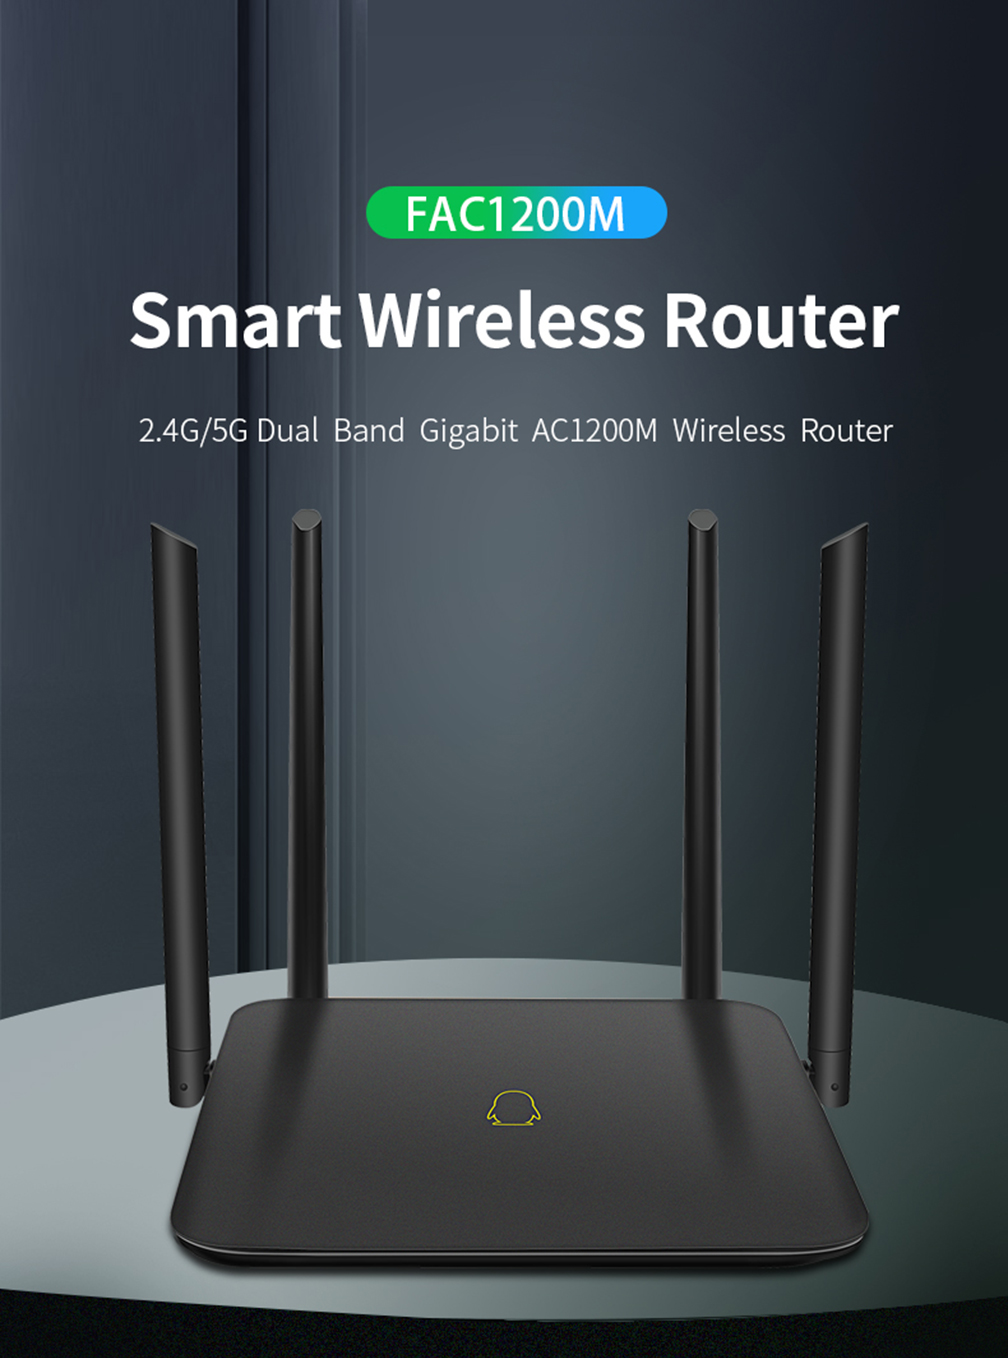 FAC1200M Smart Wireless Router